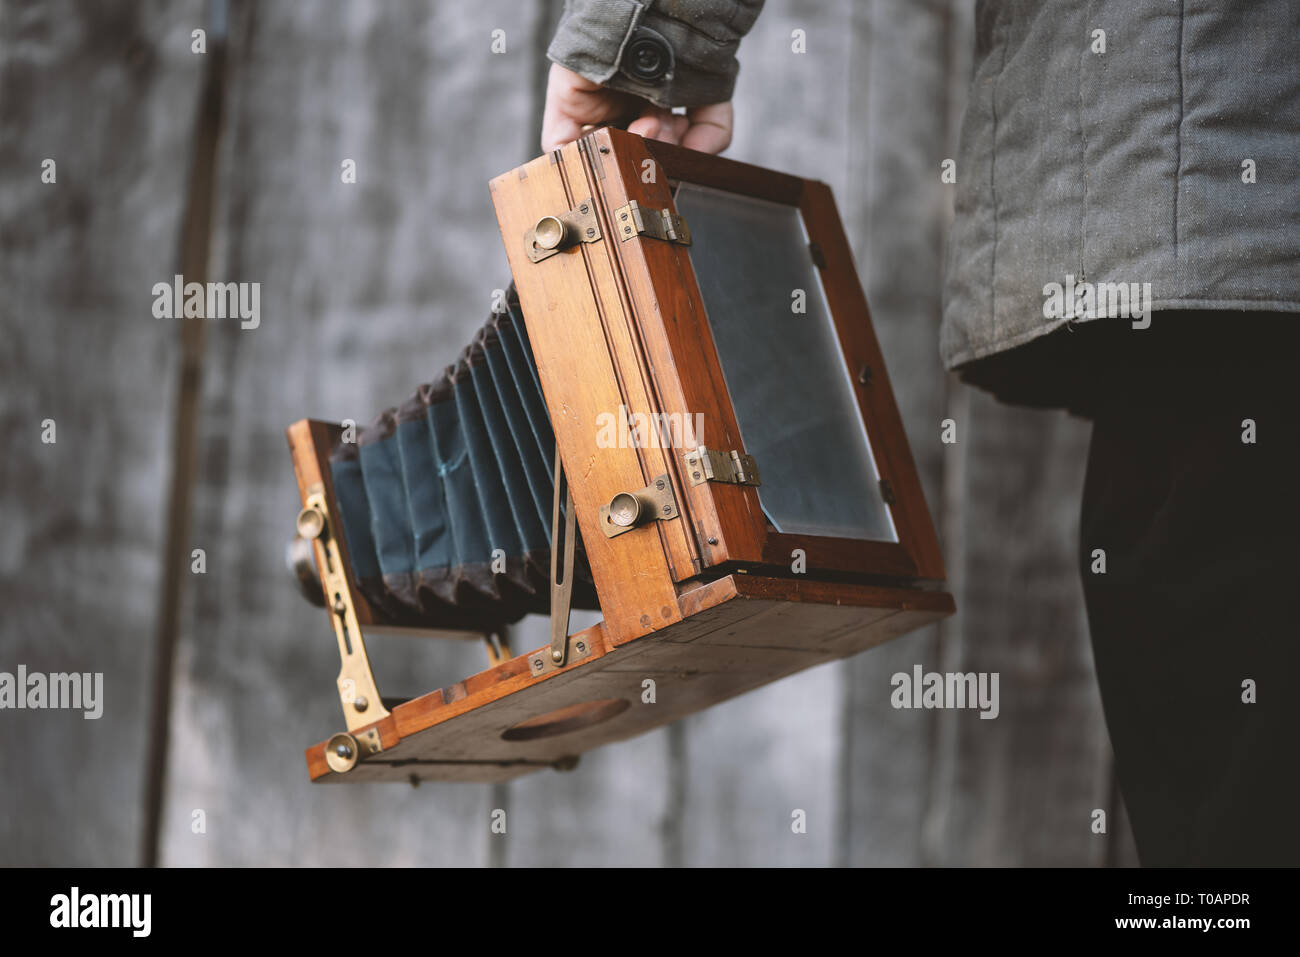 Photographer holds vintage large format studio camera, 5x7 inches. Concept - photography of the 1930s-1950s. - Stock Image